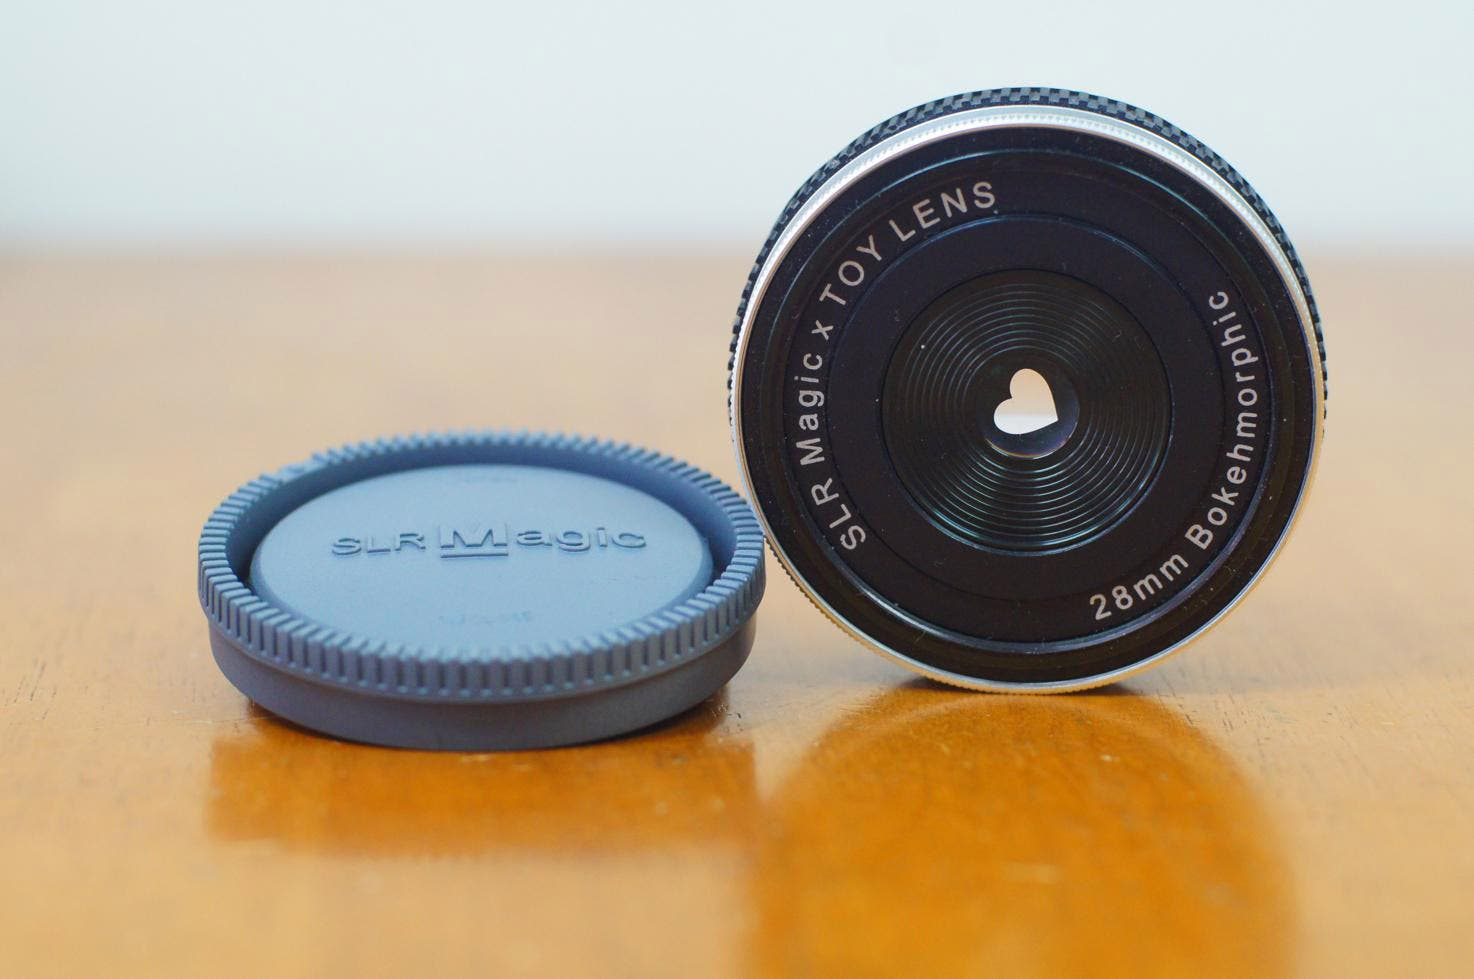 SLR Magic Announces New Toy Lenses For NEX, MFT and Pentax Q